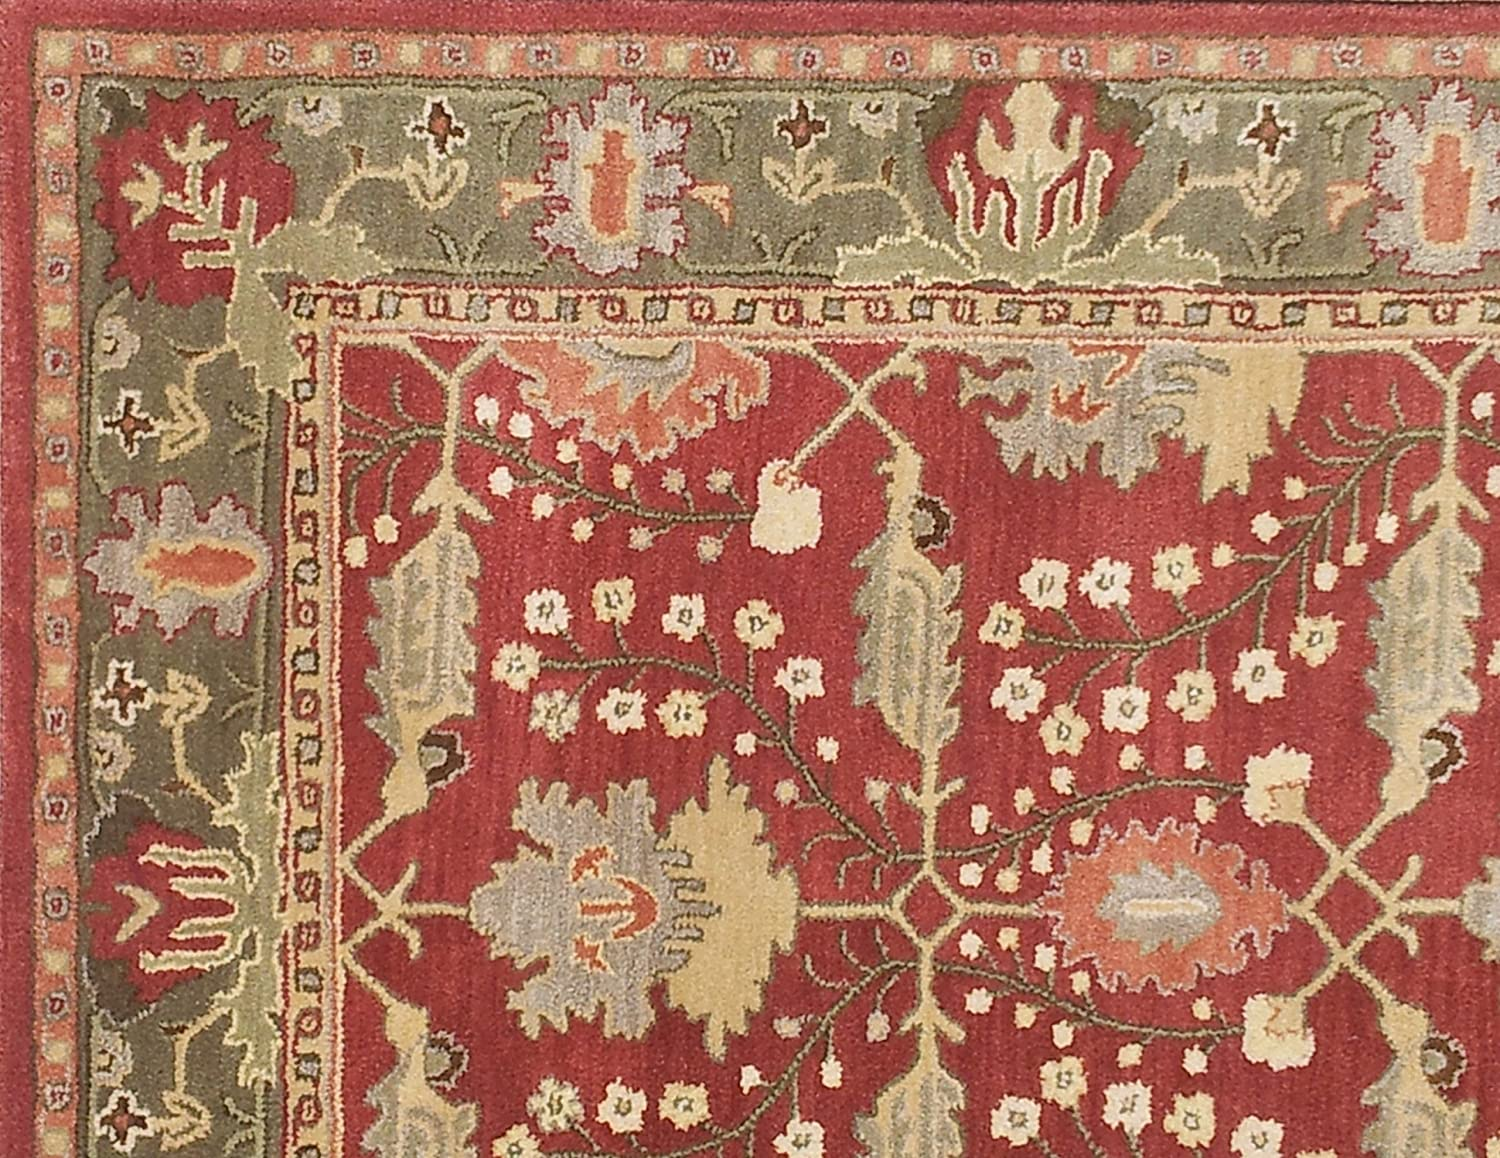 2.5X9 Allen Home Wool Rug 3X5 5X8 8X10 9X12 Allie Brown Tufted Art and Crafts Persian Traditional Wool Rug Carpet